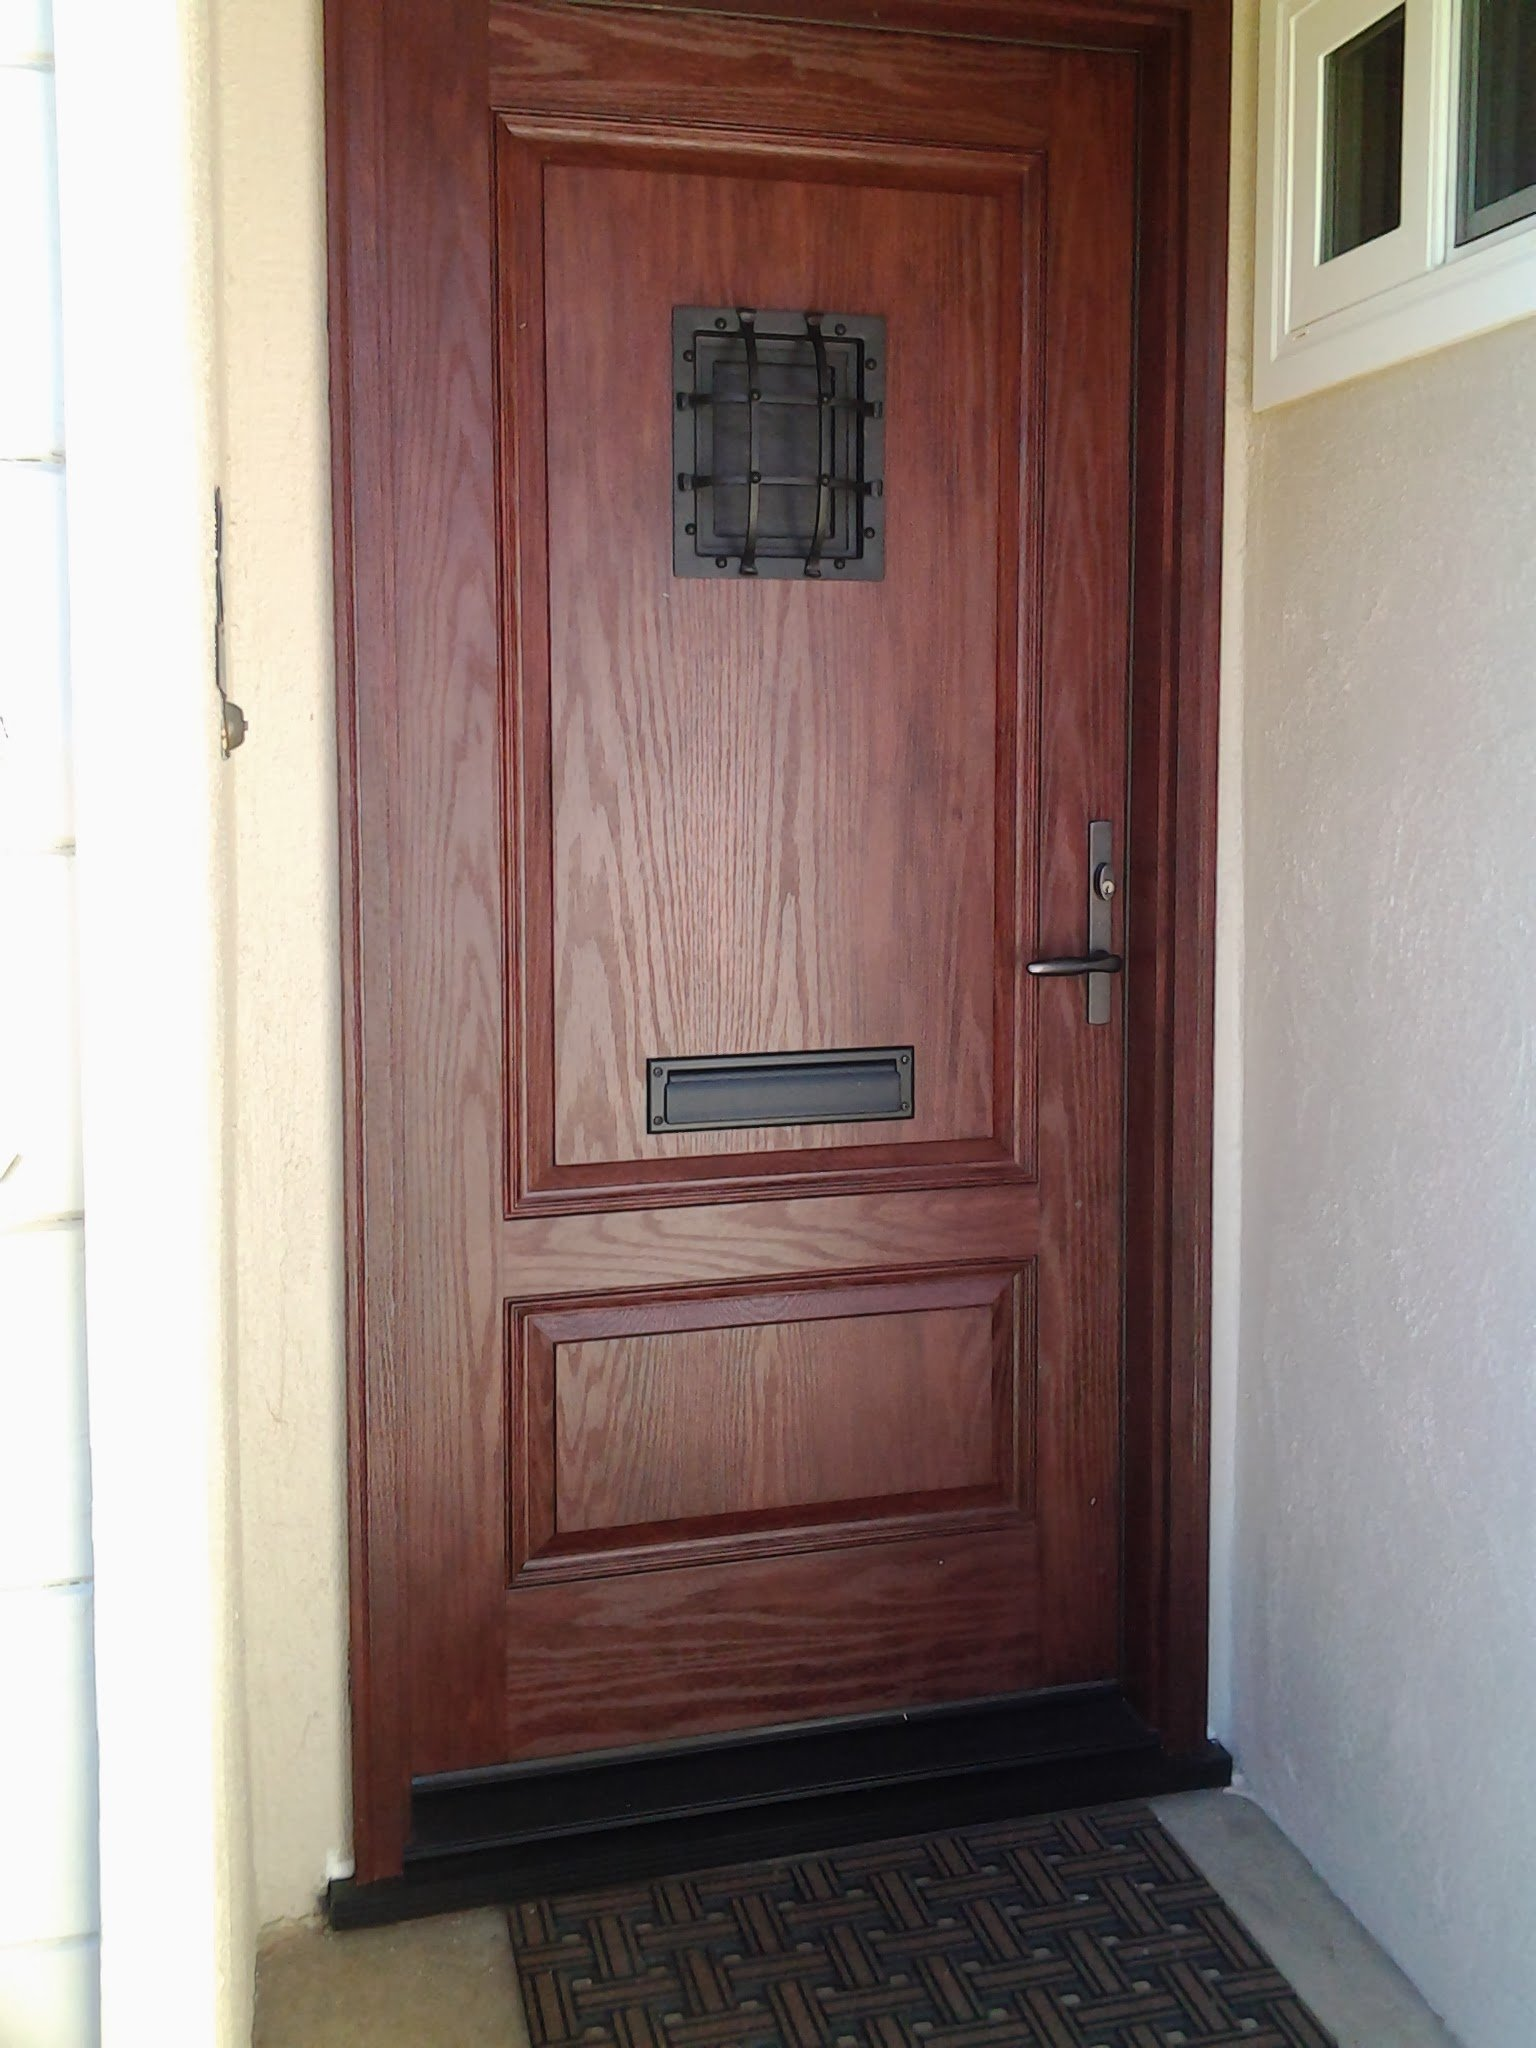 Mail Slot Fiberglass Front Door & Fiberglass Front Entry Door with Mail Slot